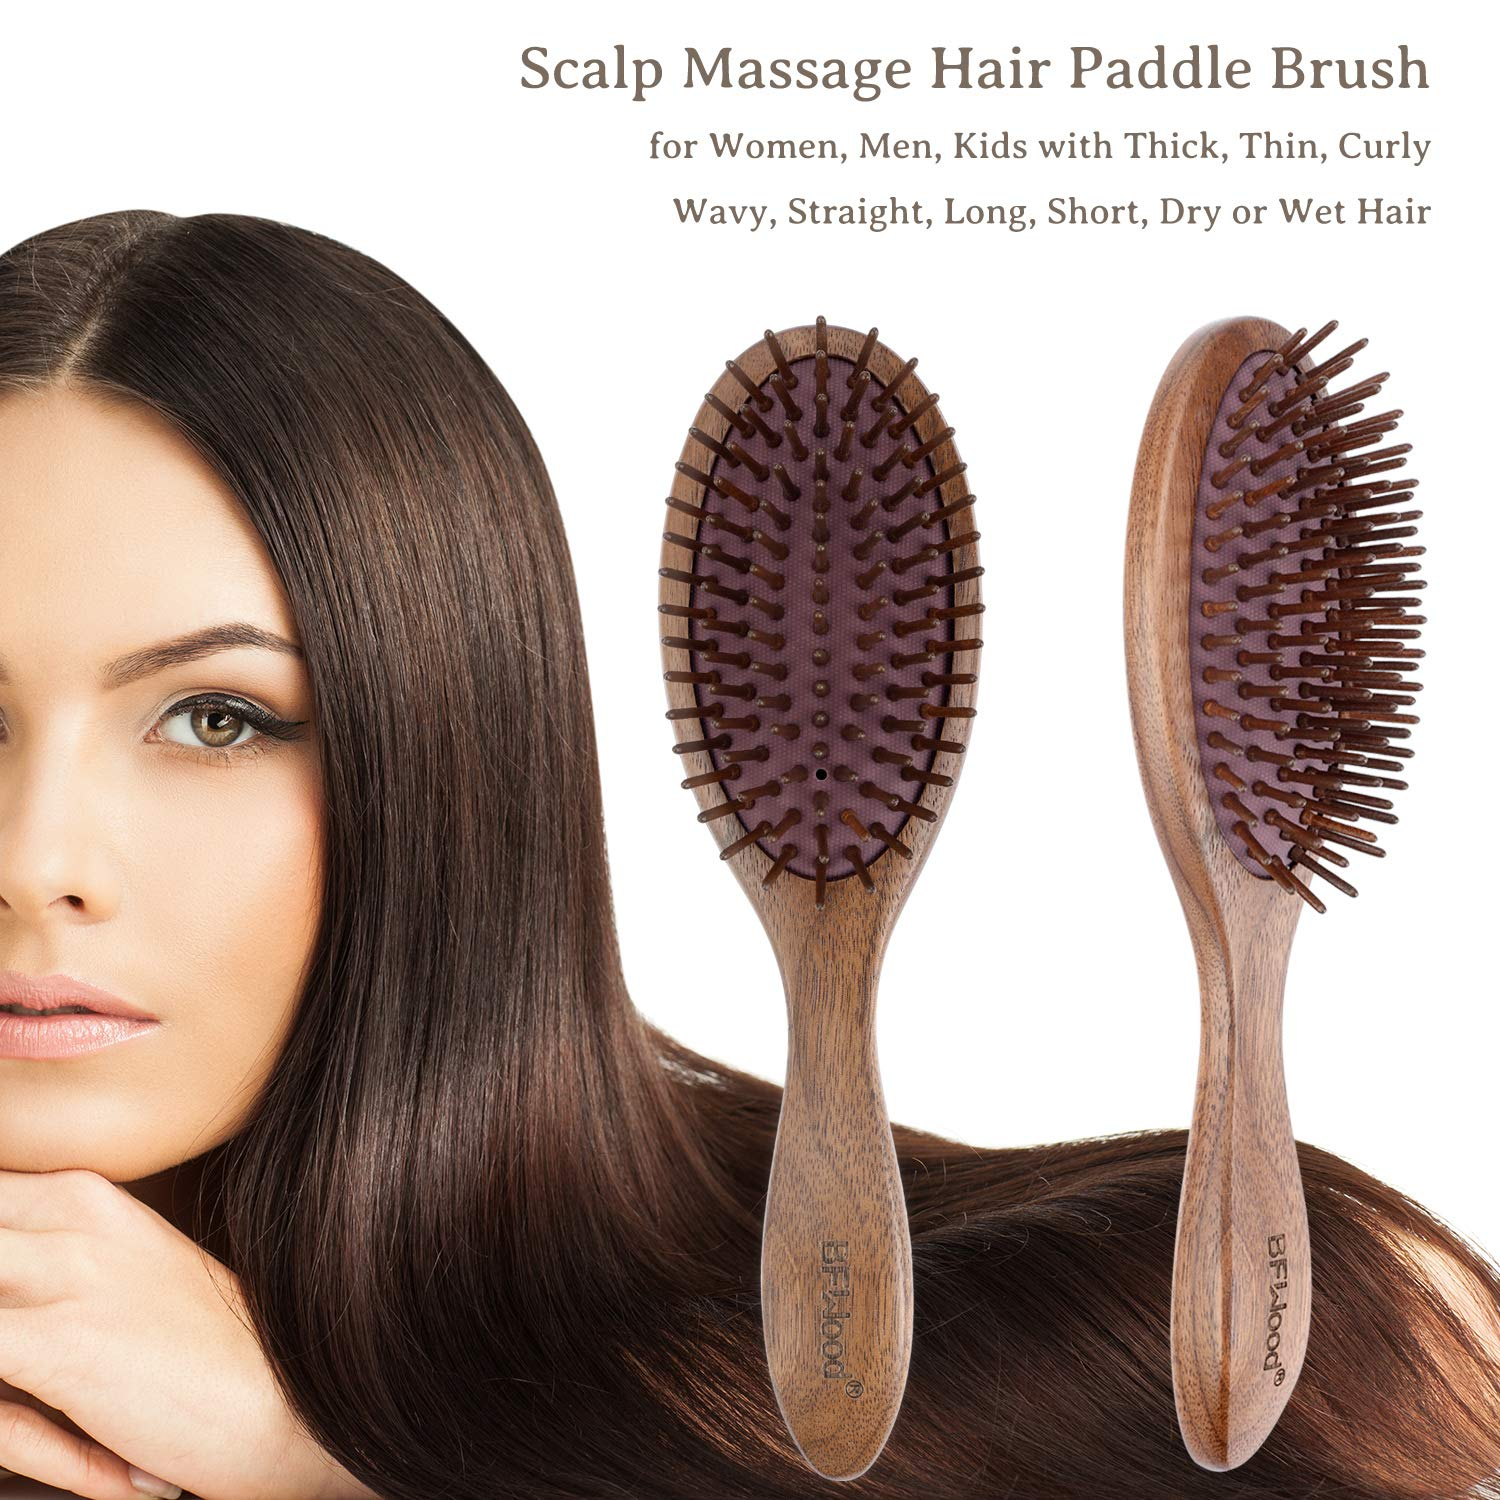 Wooden hair brush benefits